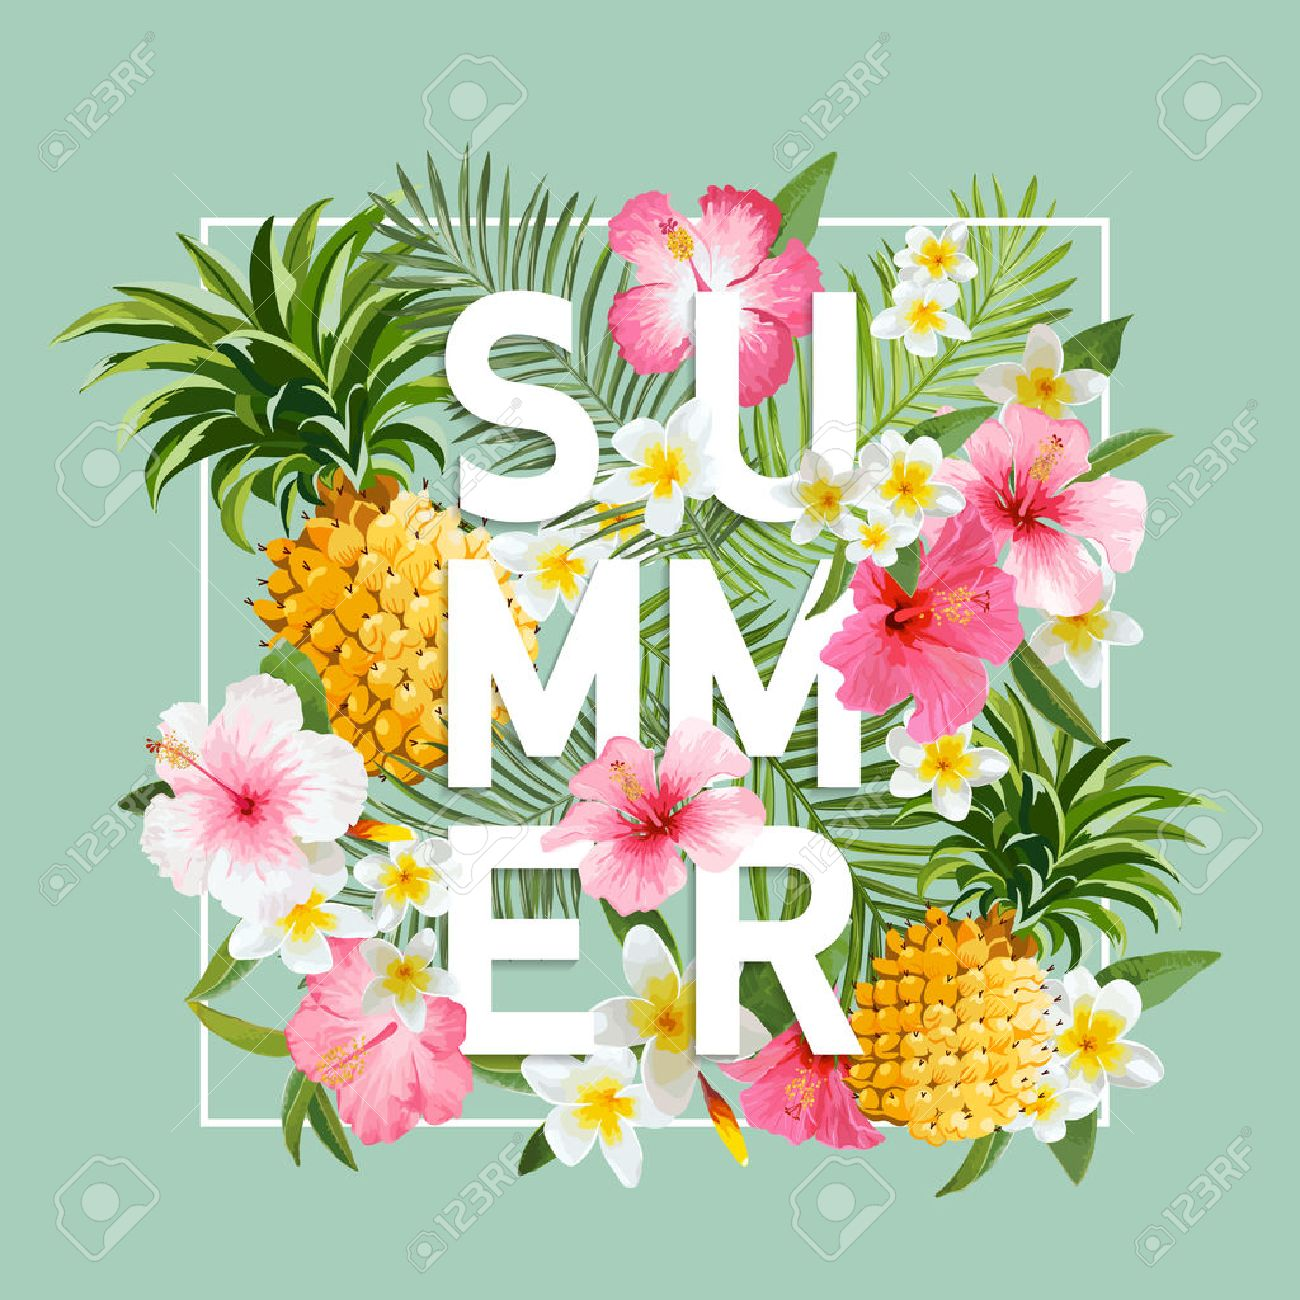 Tropical Flowers and Leaves Background. Summer Design. Vector. T-shirt Fashion Graphic. Exotic Background. - 54146525